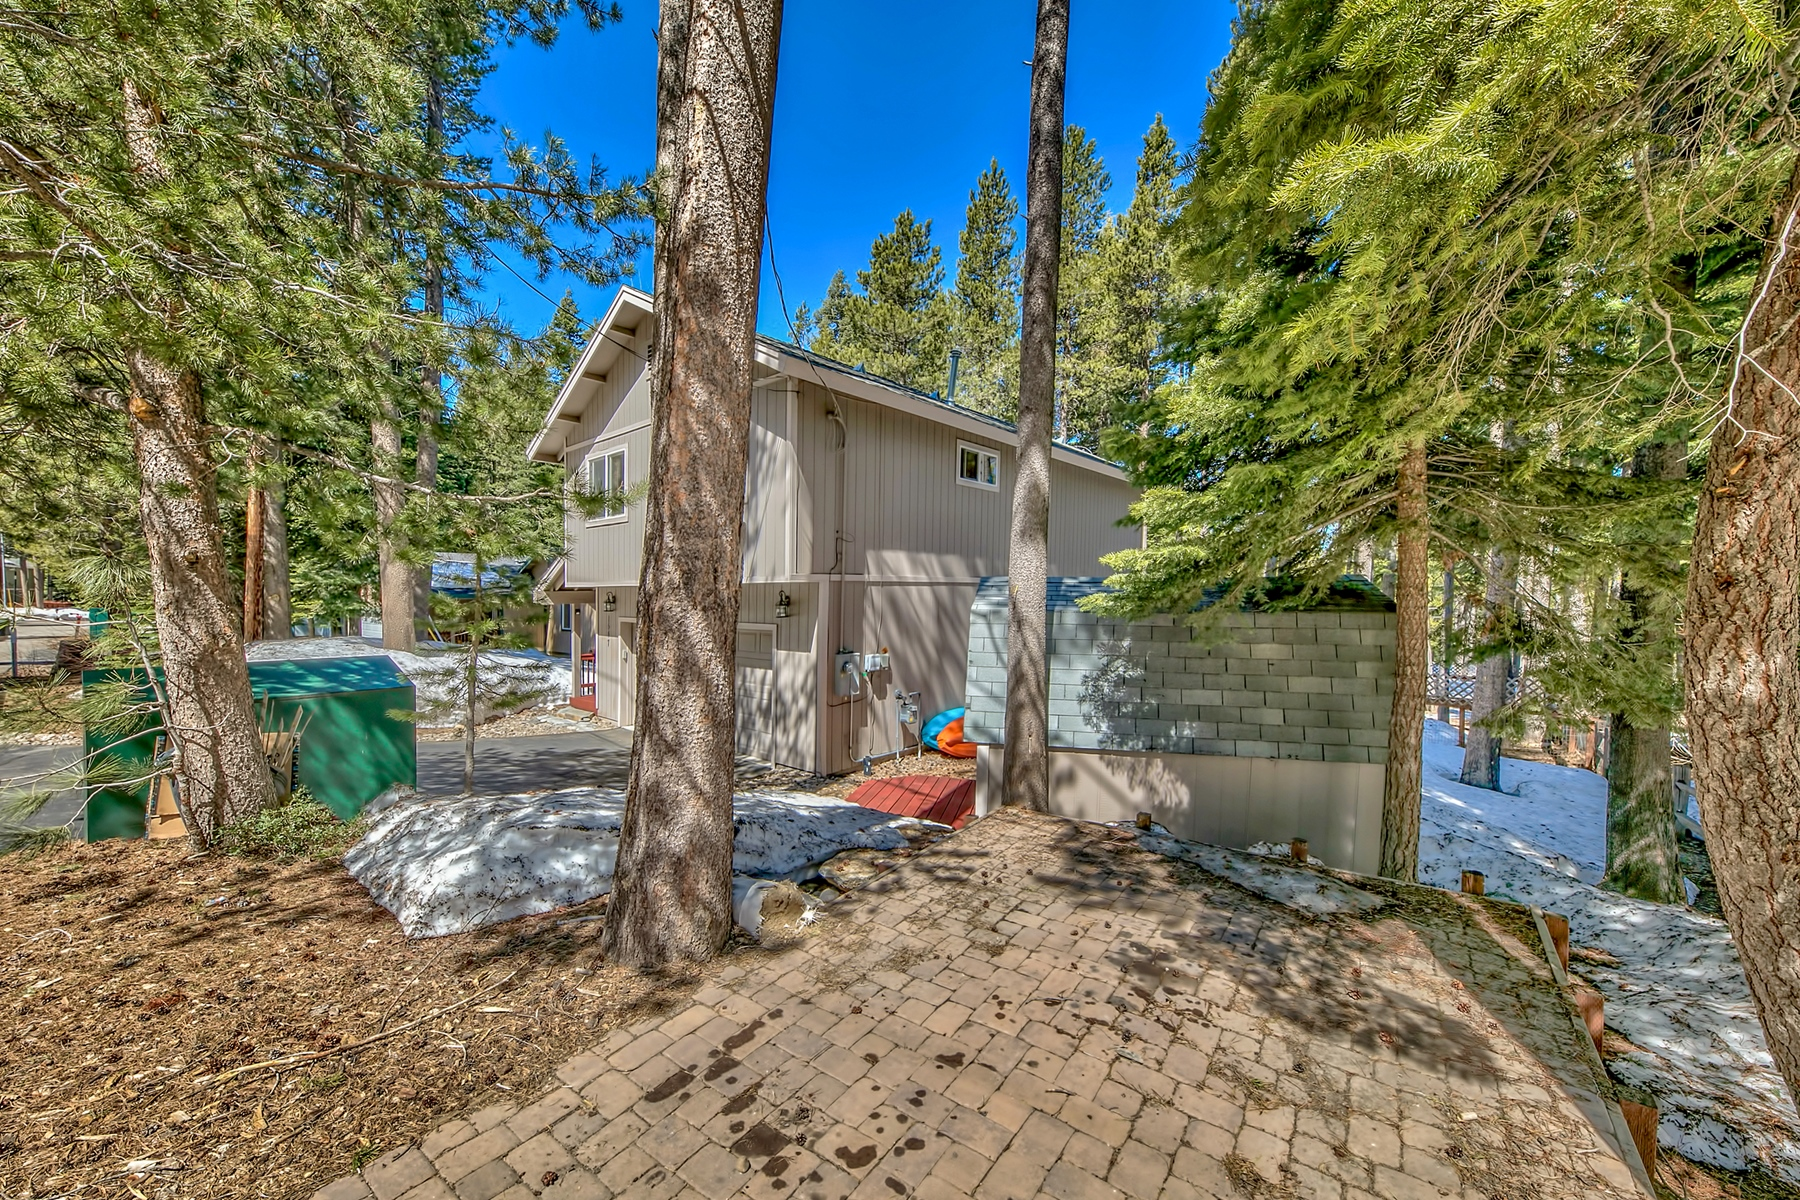 Additional photo for property listing at 1547 Aztec Way, South Lake Tahoe, CA 96150 1547 Aztec Way South Lake Tahoe, California 96150 United States